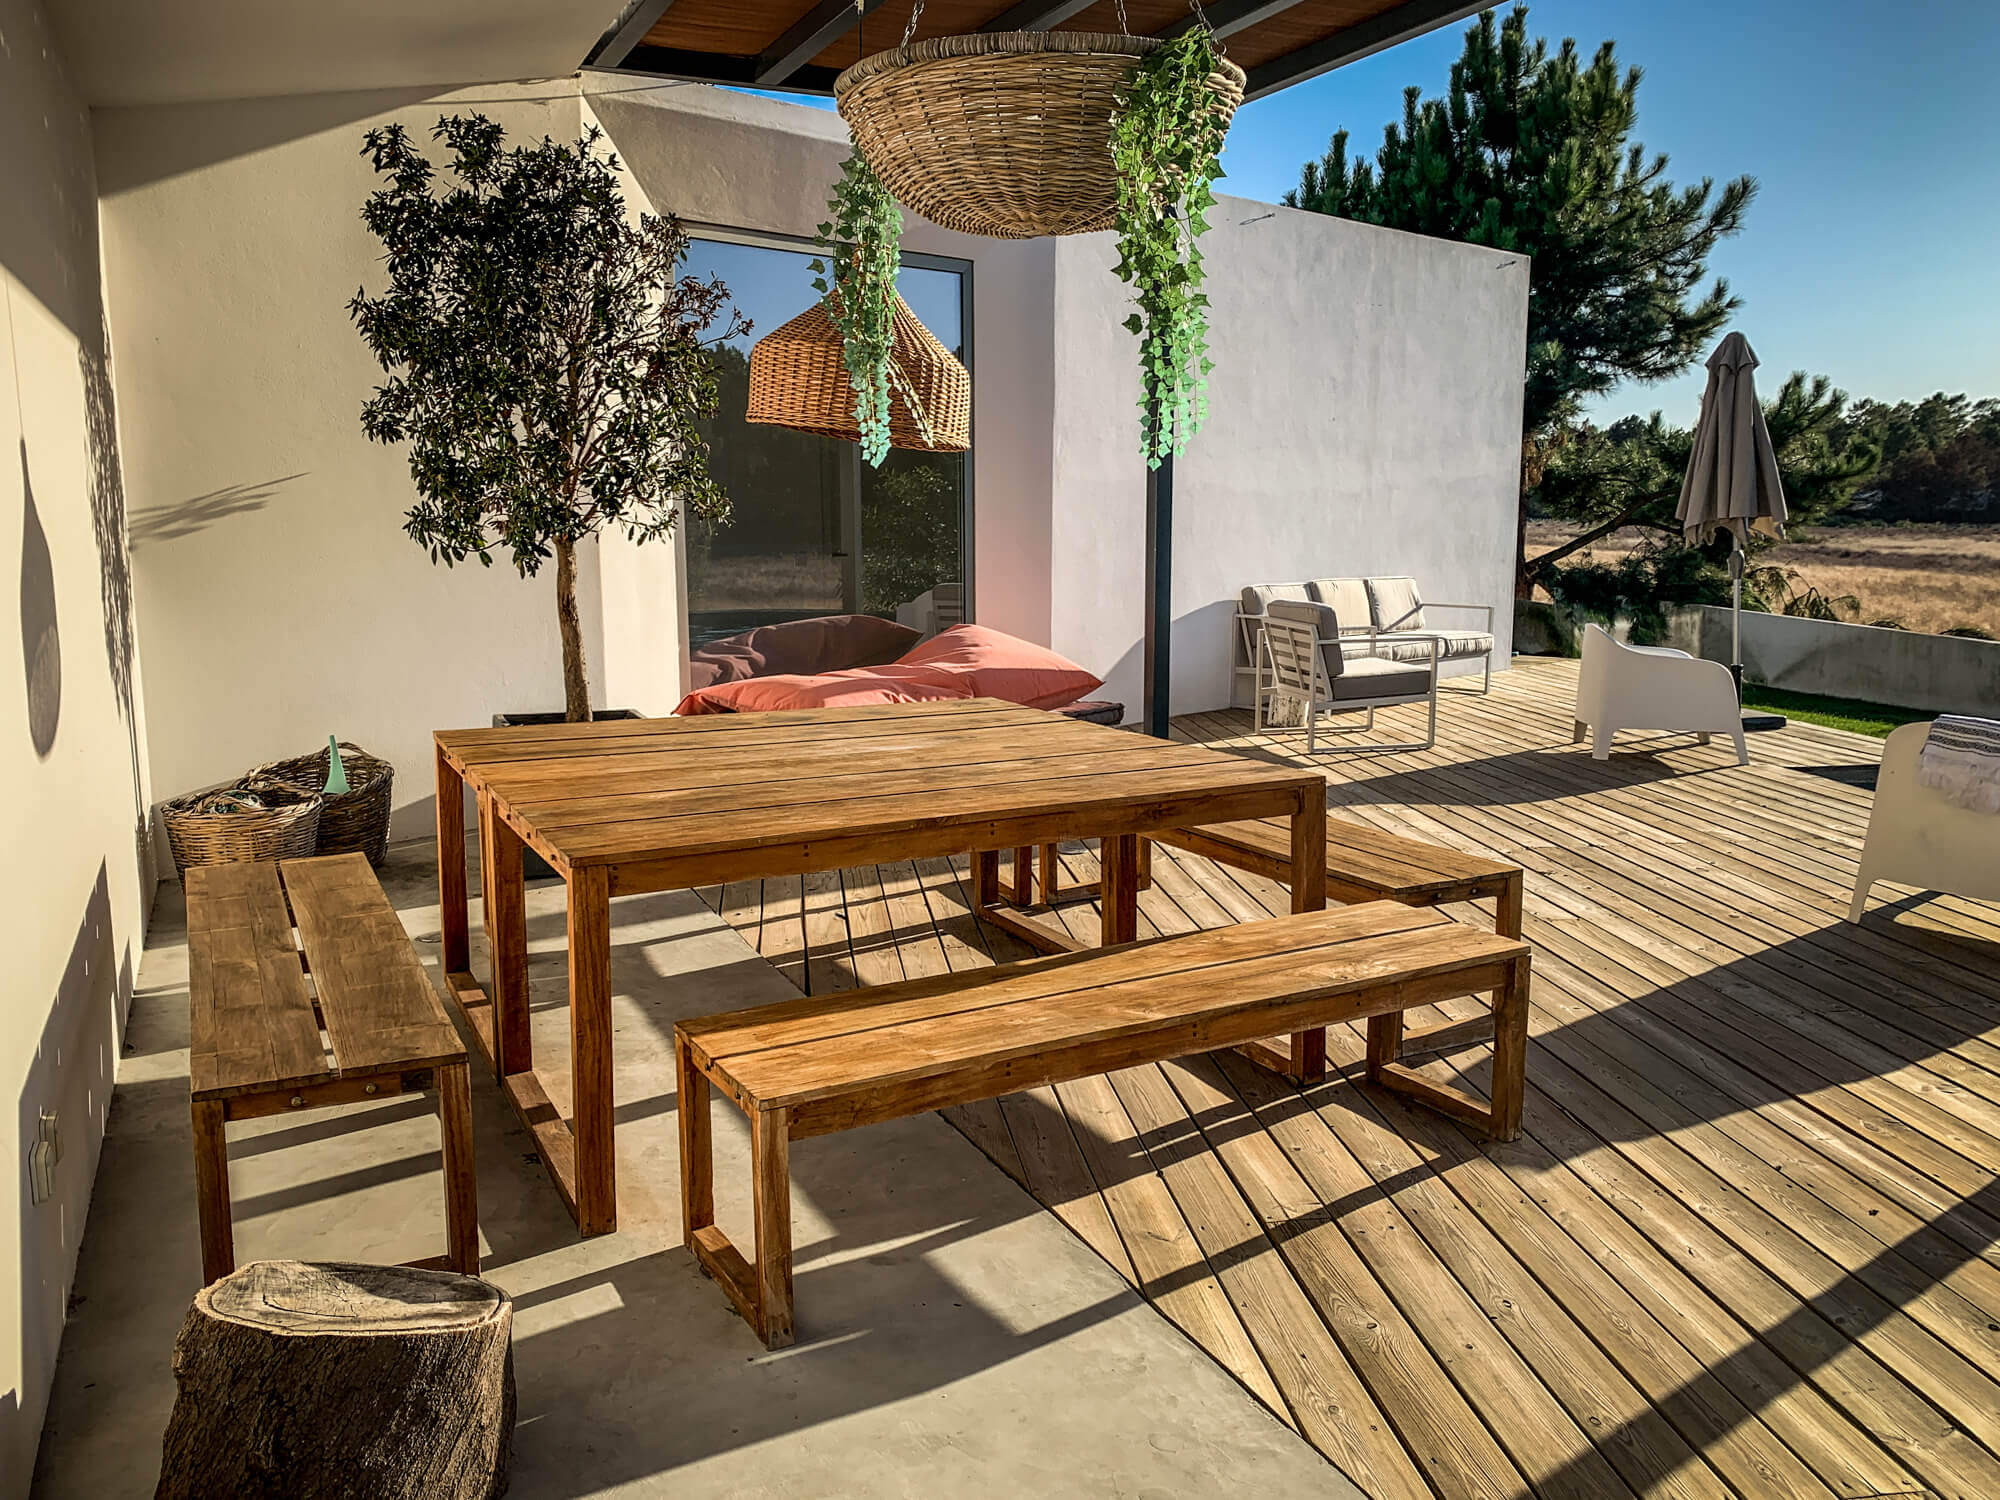 Brejos villa outdoor dining